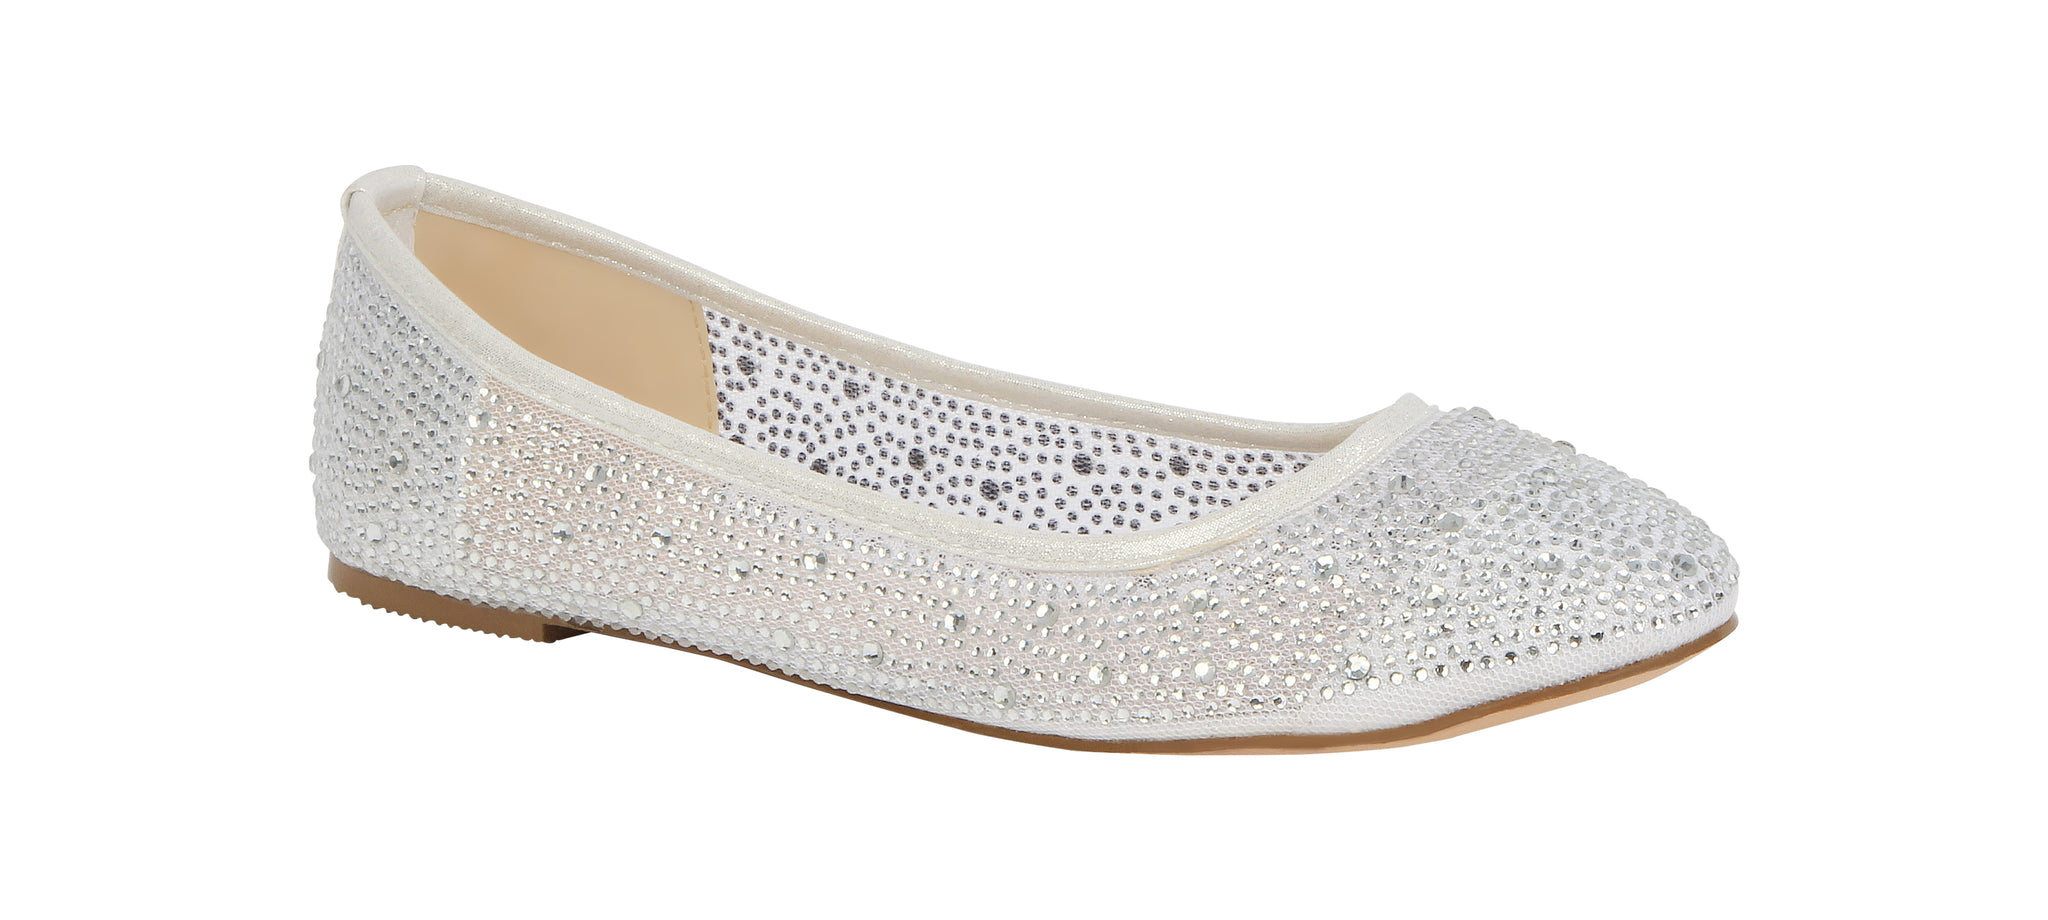 De Blossom Bridal Women's Sheer Rhinestone Round Toe Ballet Wedding Flat- White Metallic